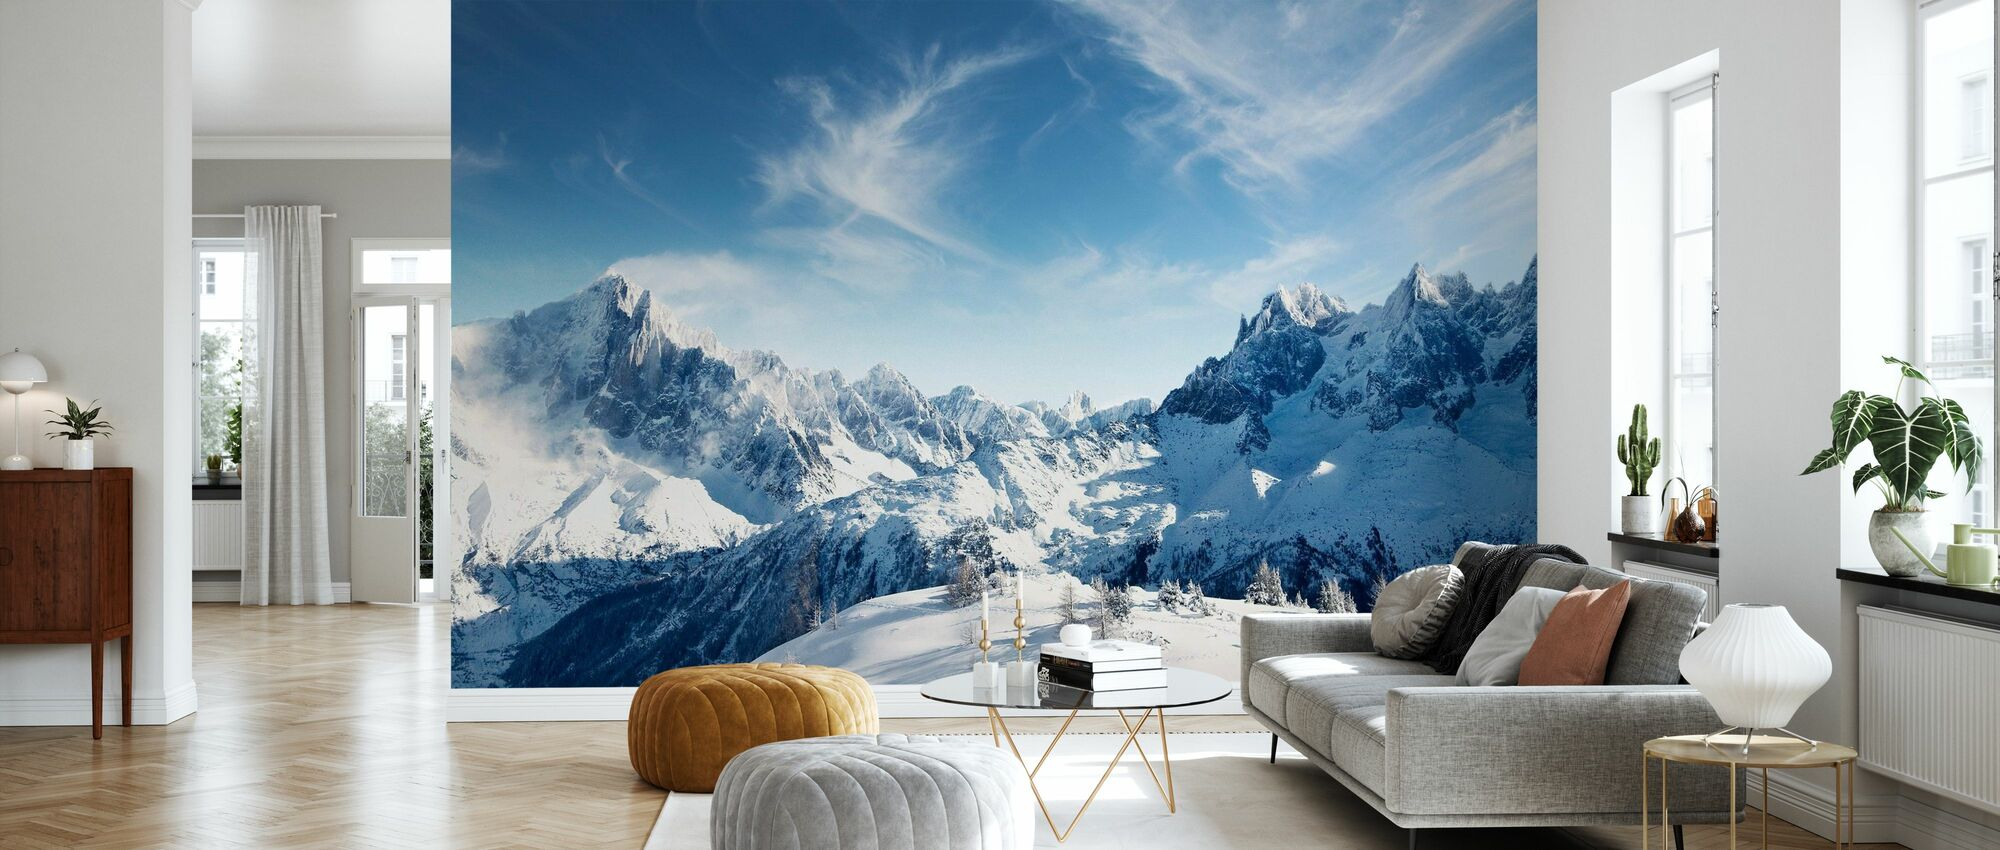 Sunny Alps in Chamonix - Wallpaper - Living Room